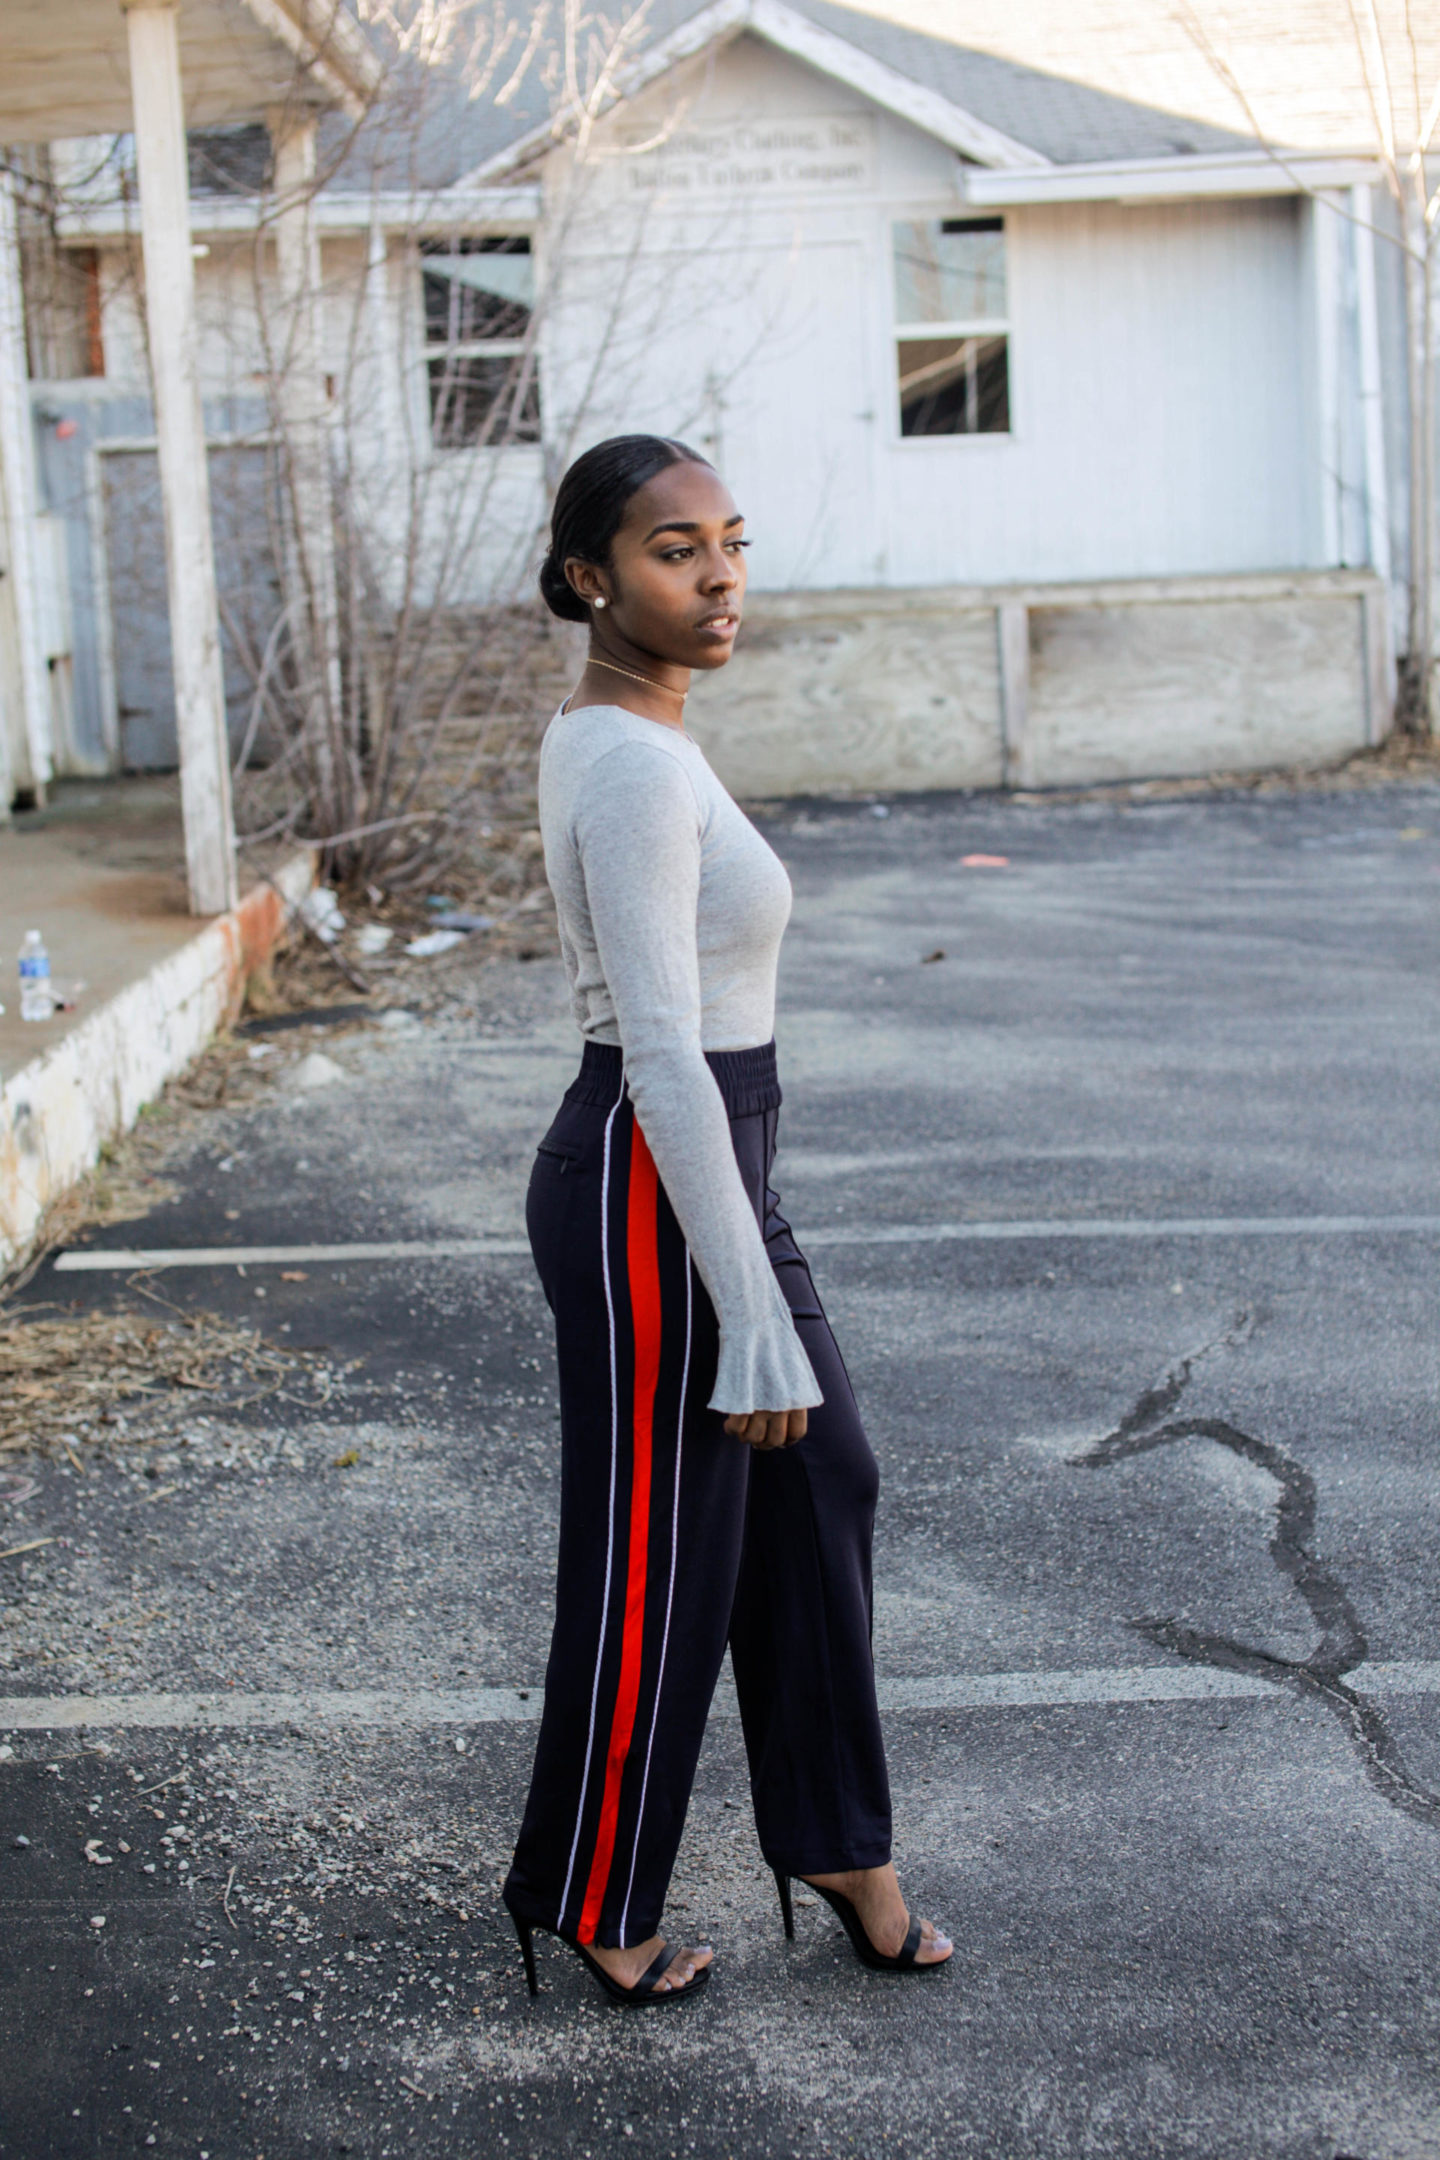 gucci joggers. another athleisure look \u2013 gucci inspired joggers   spring fashion 2017